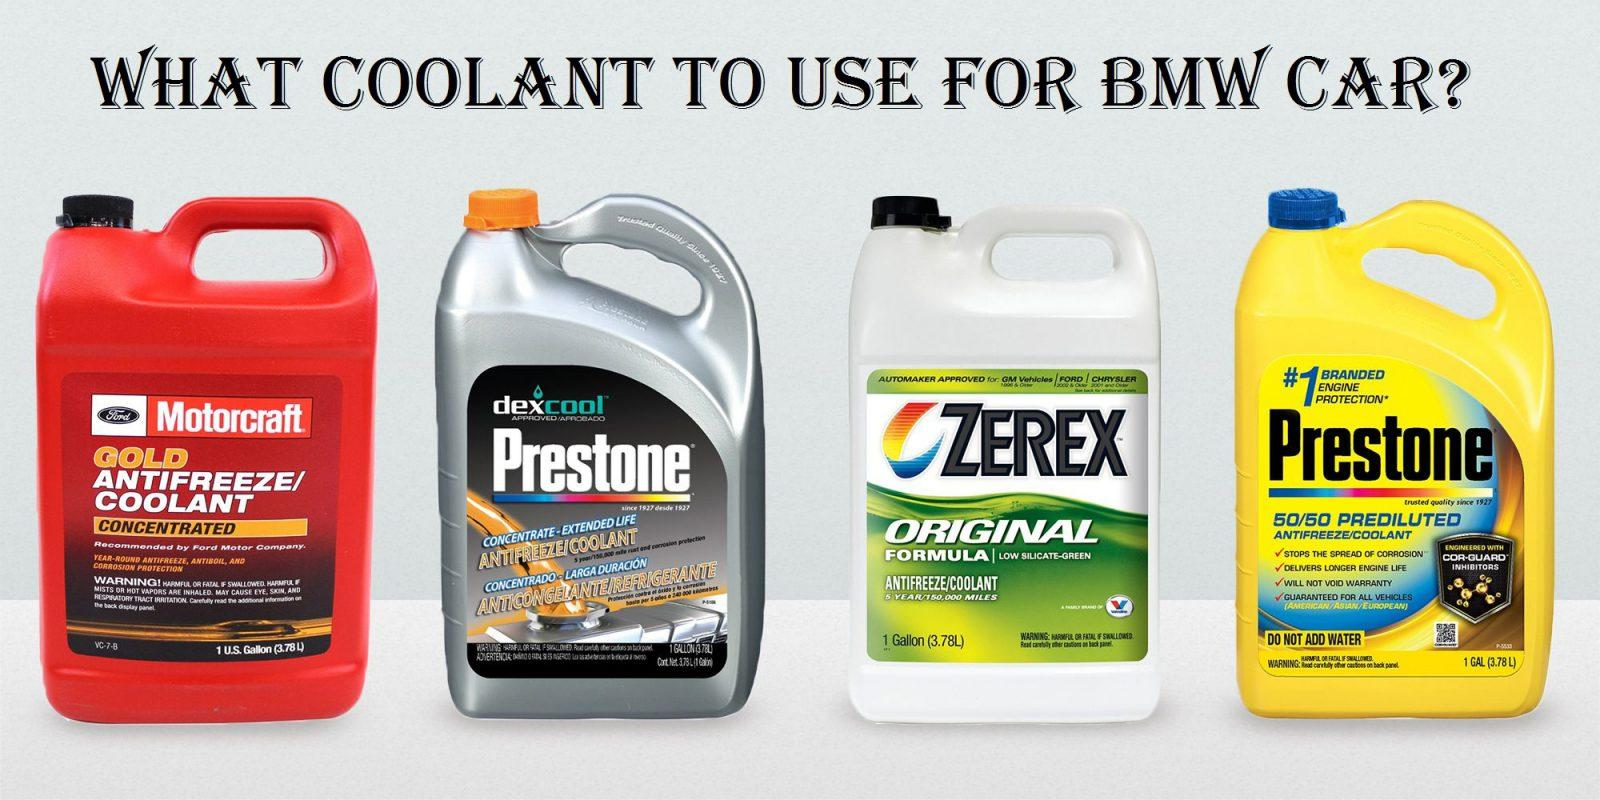 Enjoyable Top Bmw Coolant Picks Recommended By Auto Experts Wiring Cloud Uslyletkolfr09Org